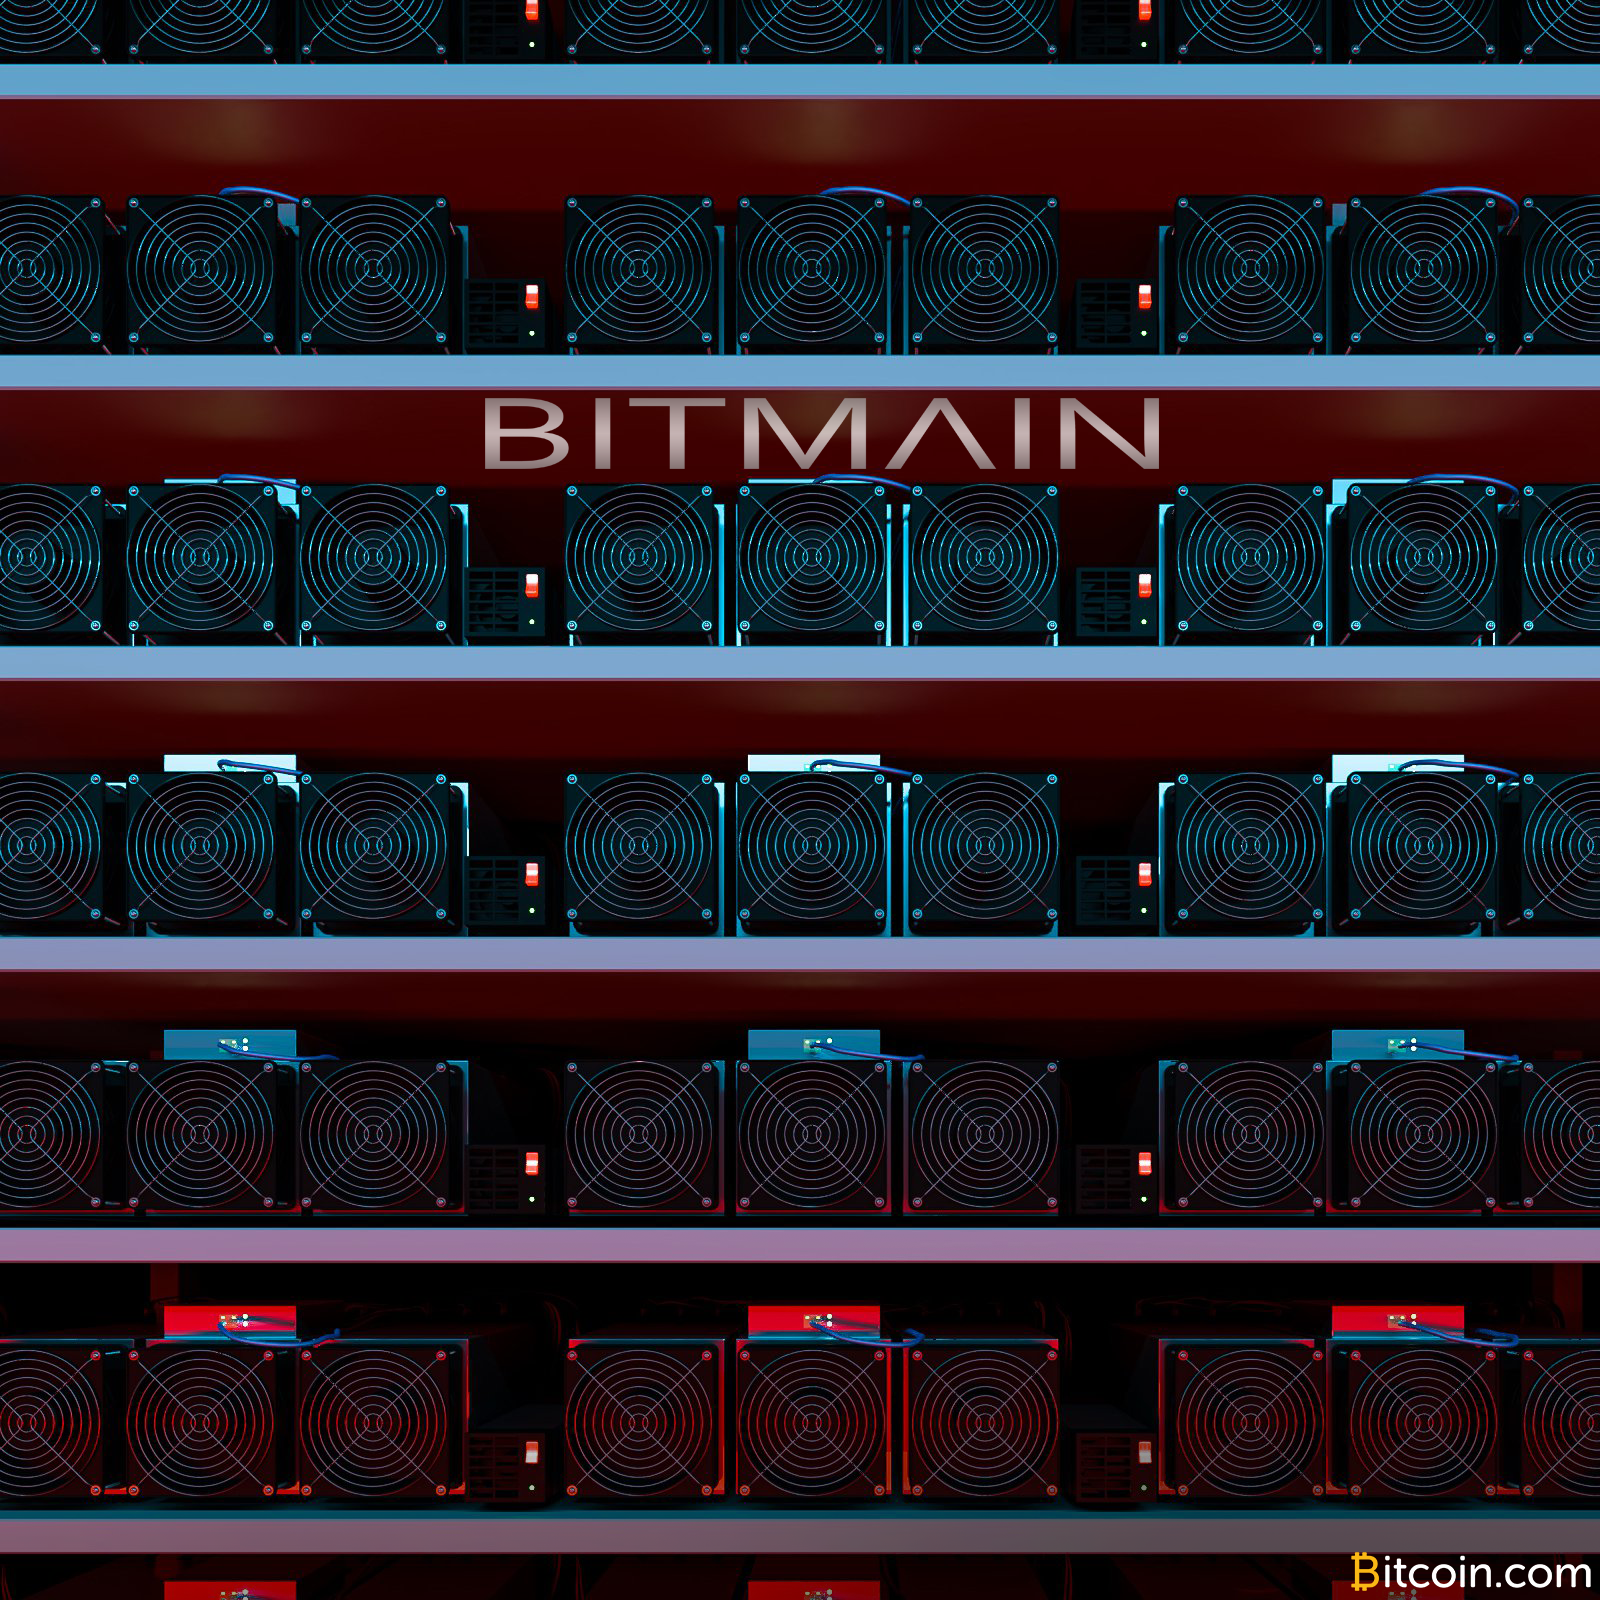 Bitmain Made a Profit of Up To $4 Billion Last Year